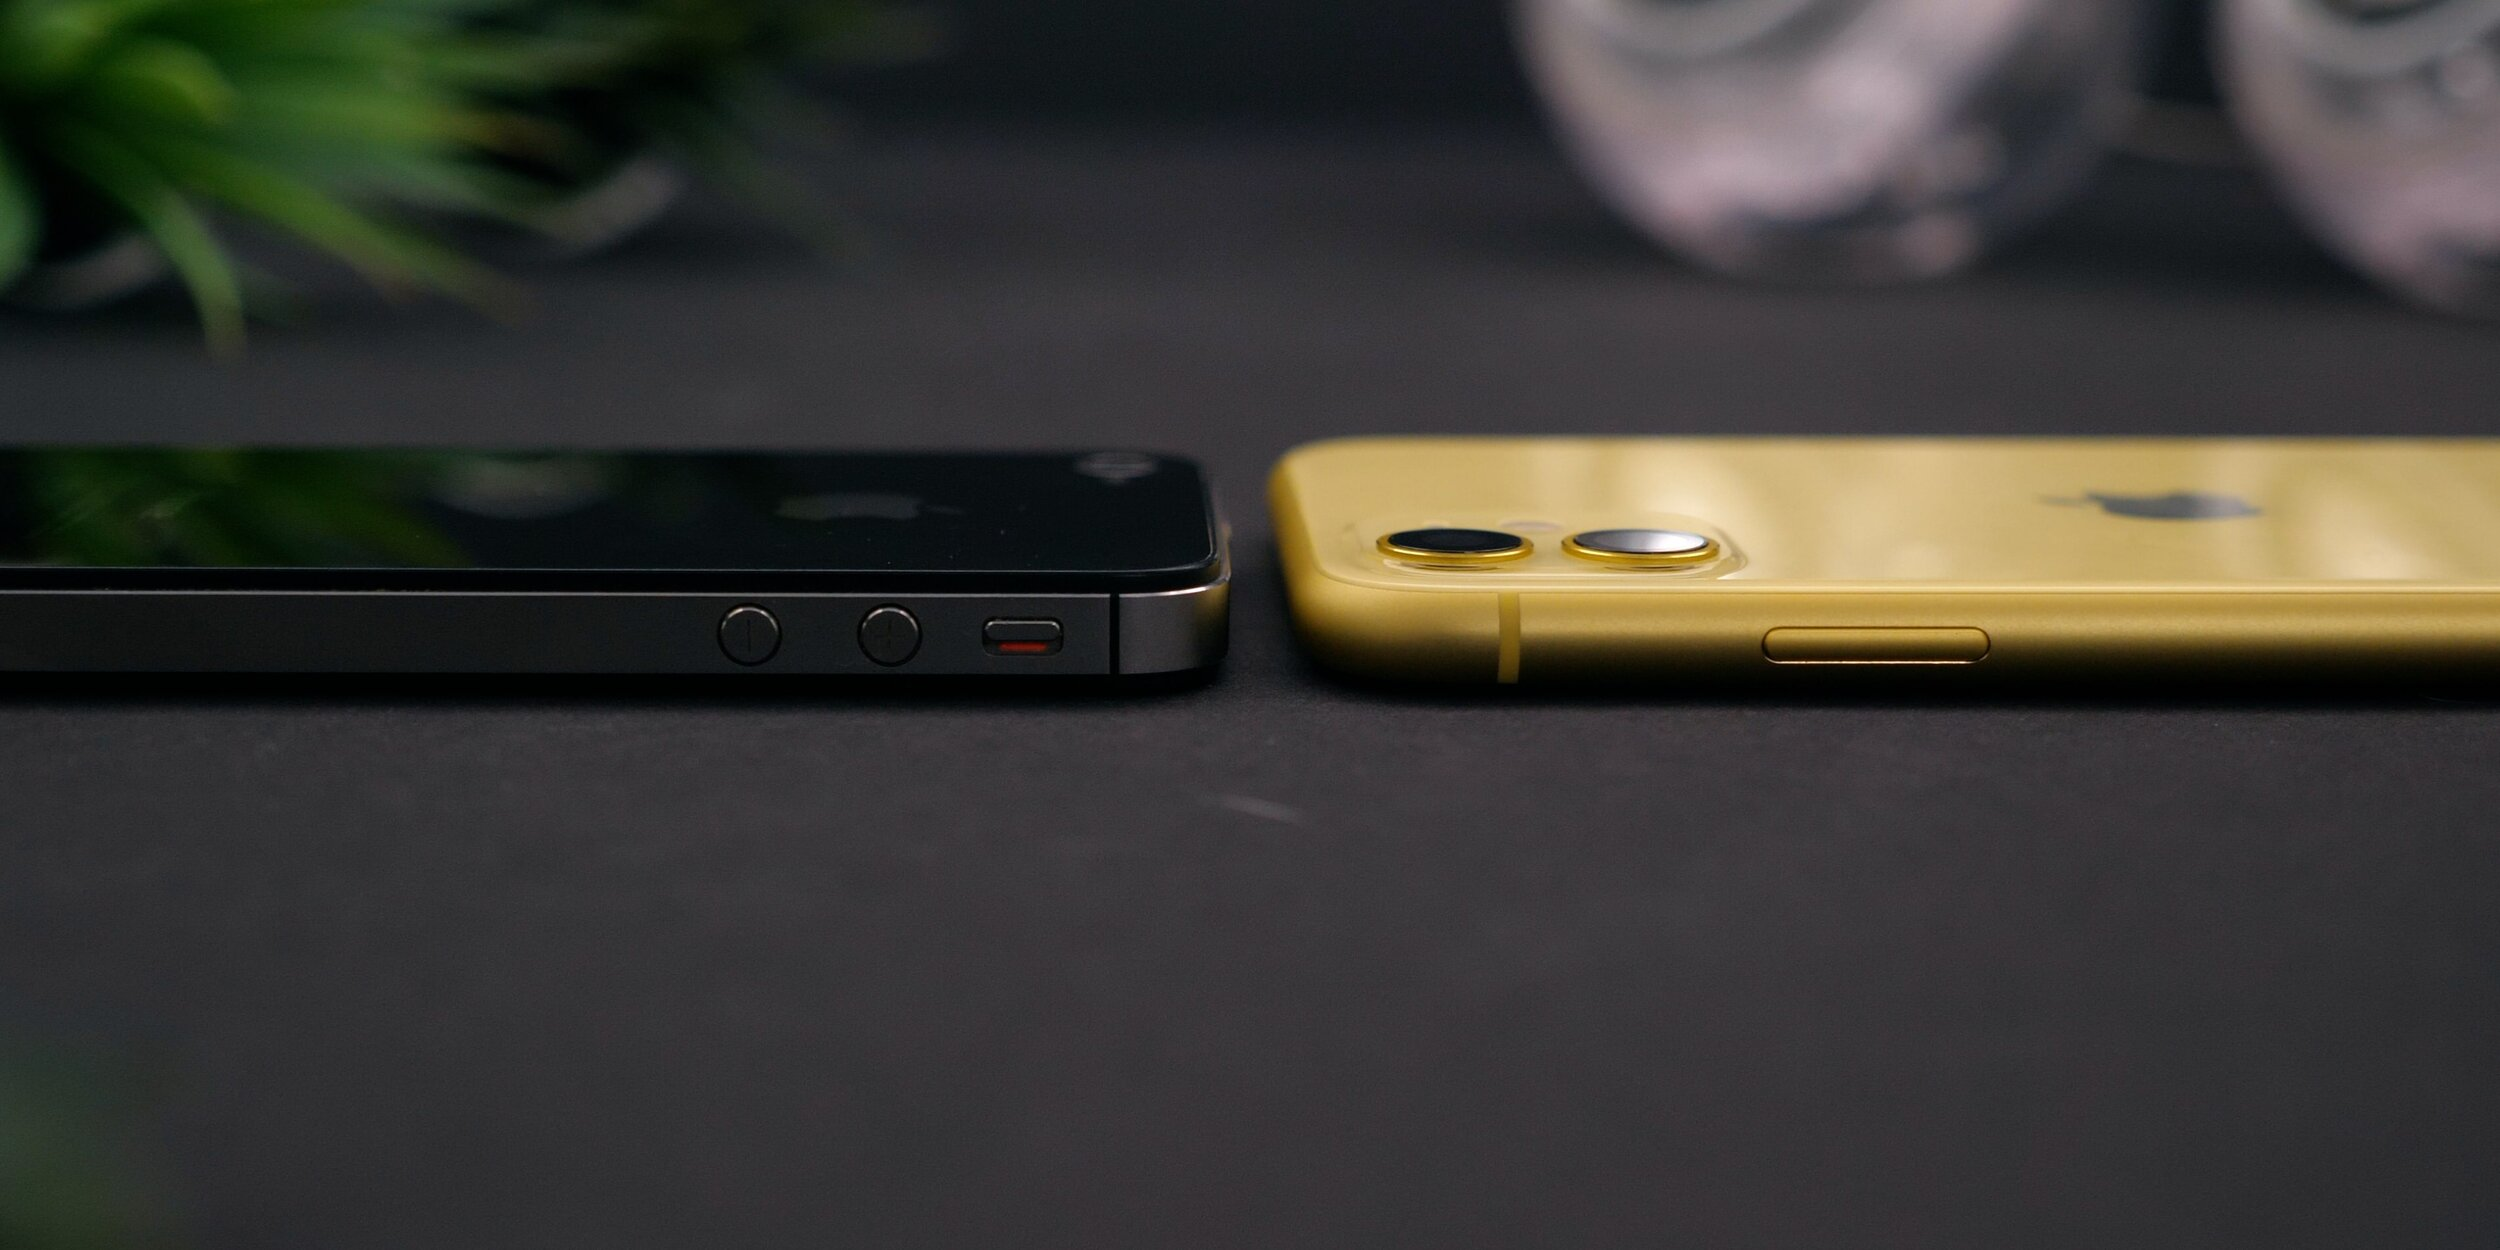 Measuring 8.3mm in thickness, this is the thickest iPhone since the 4S (Left)